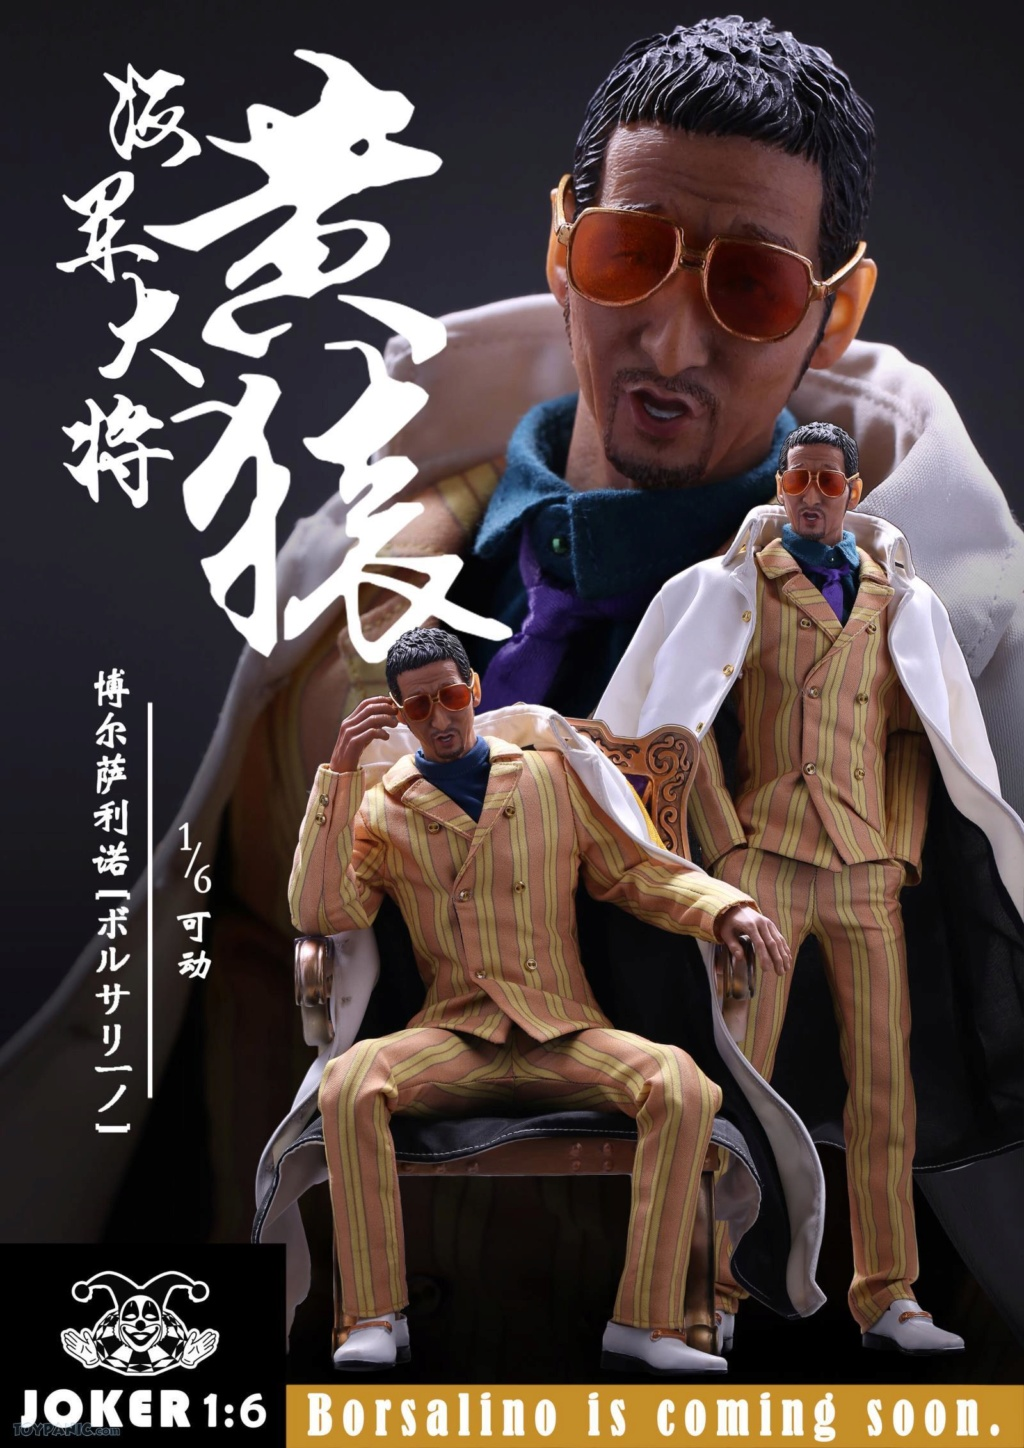 JokerToys - NEW PRODUCT: 1/6 Scale One Piece - Borsalino (Kizaru Yellow Monkey)  From JOKER TOYS  Code: JOK1810201801 10192039